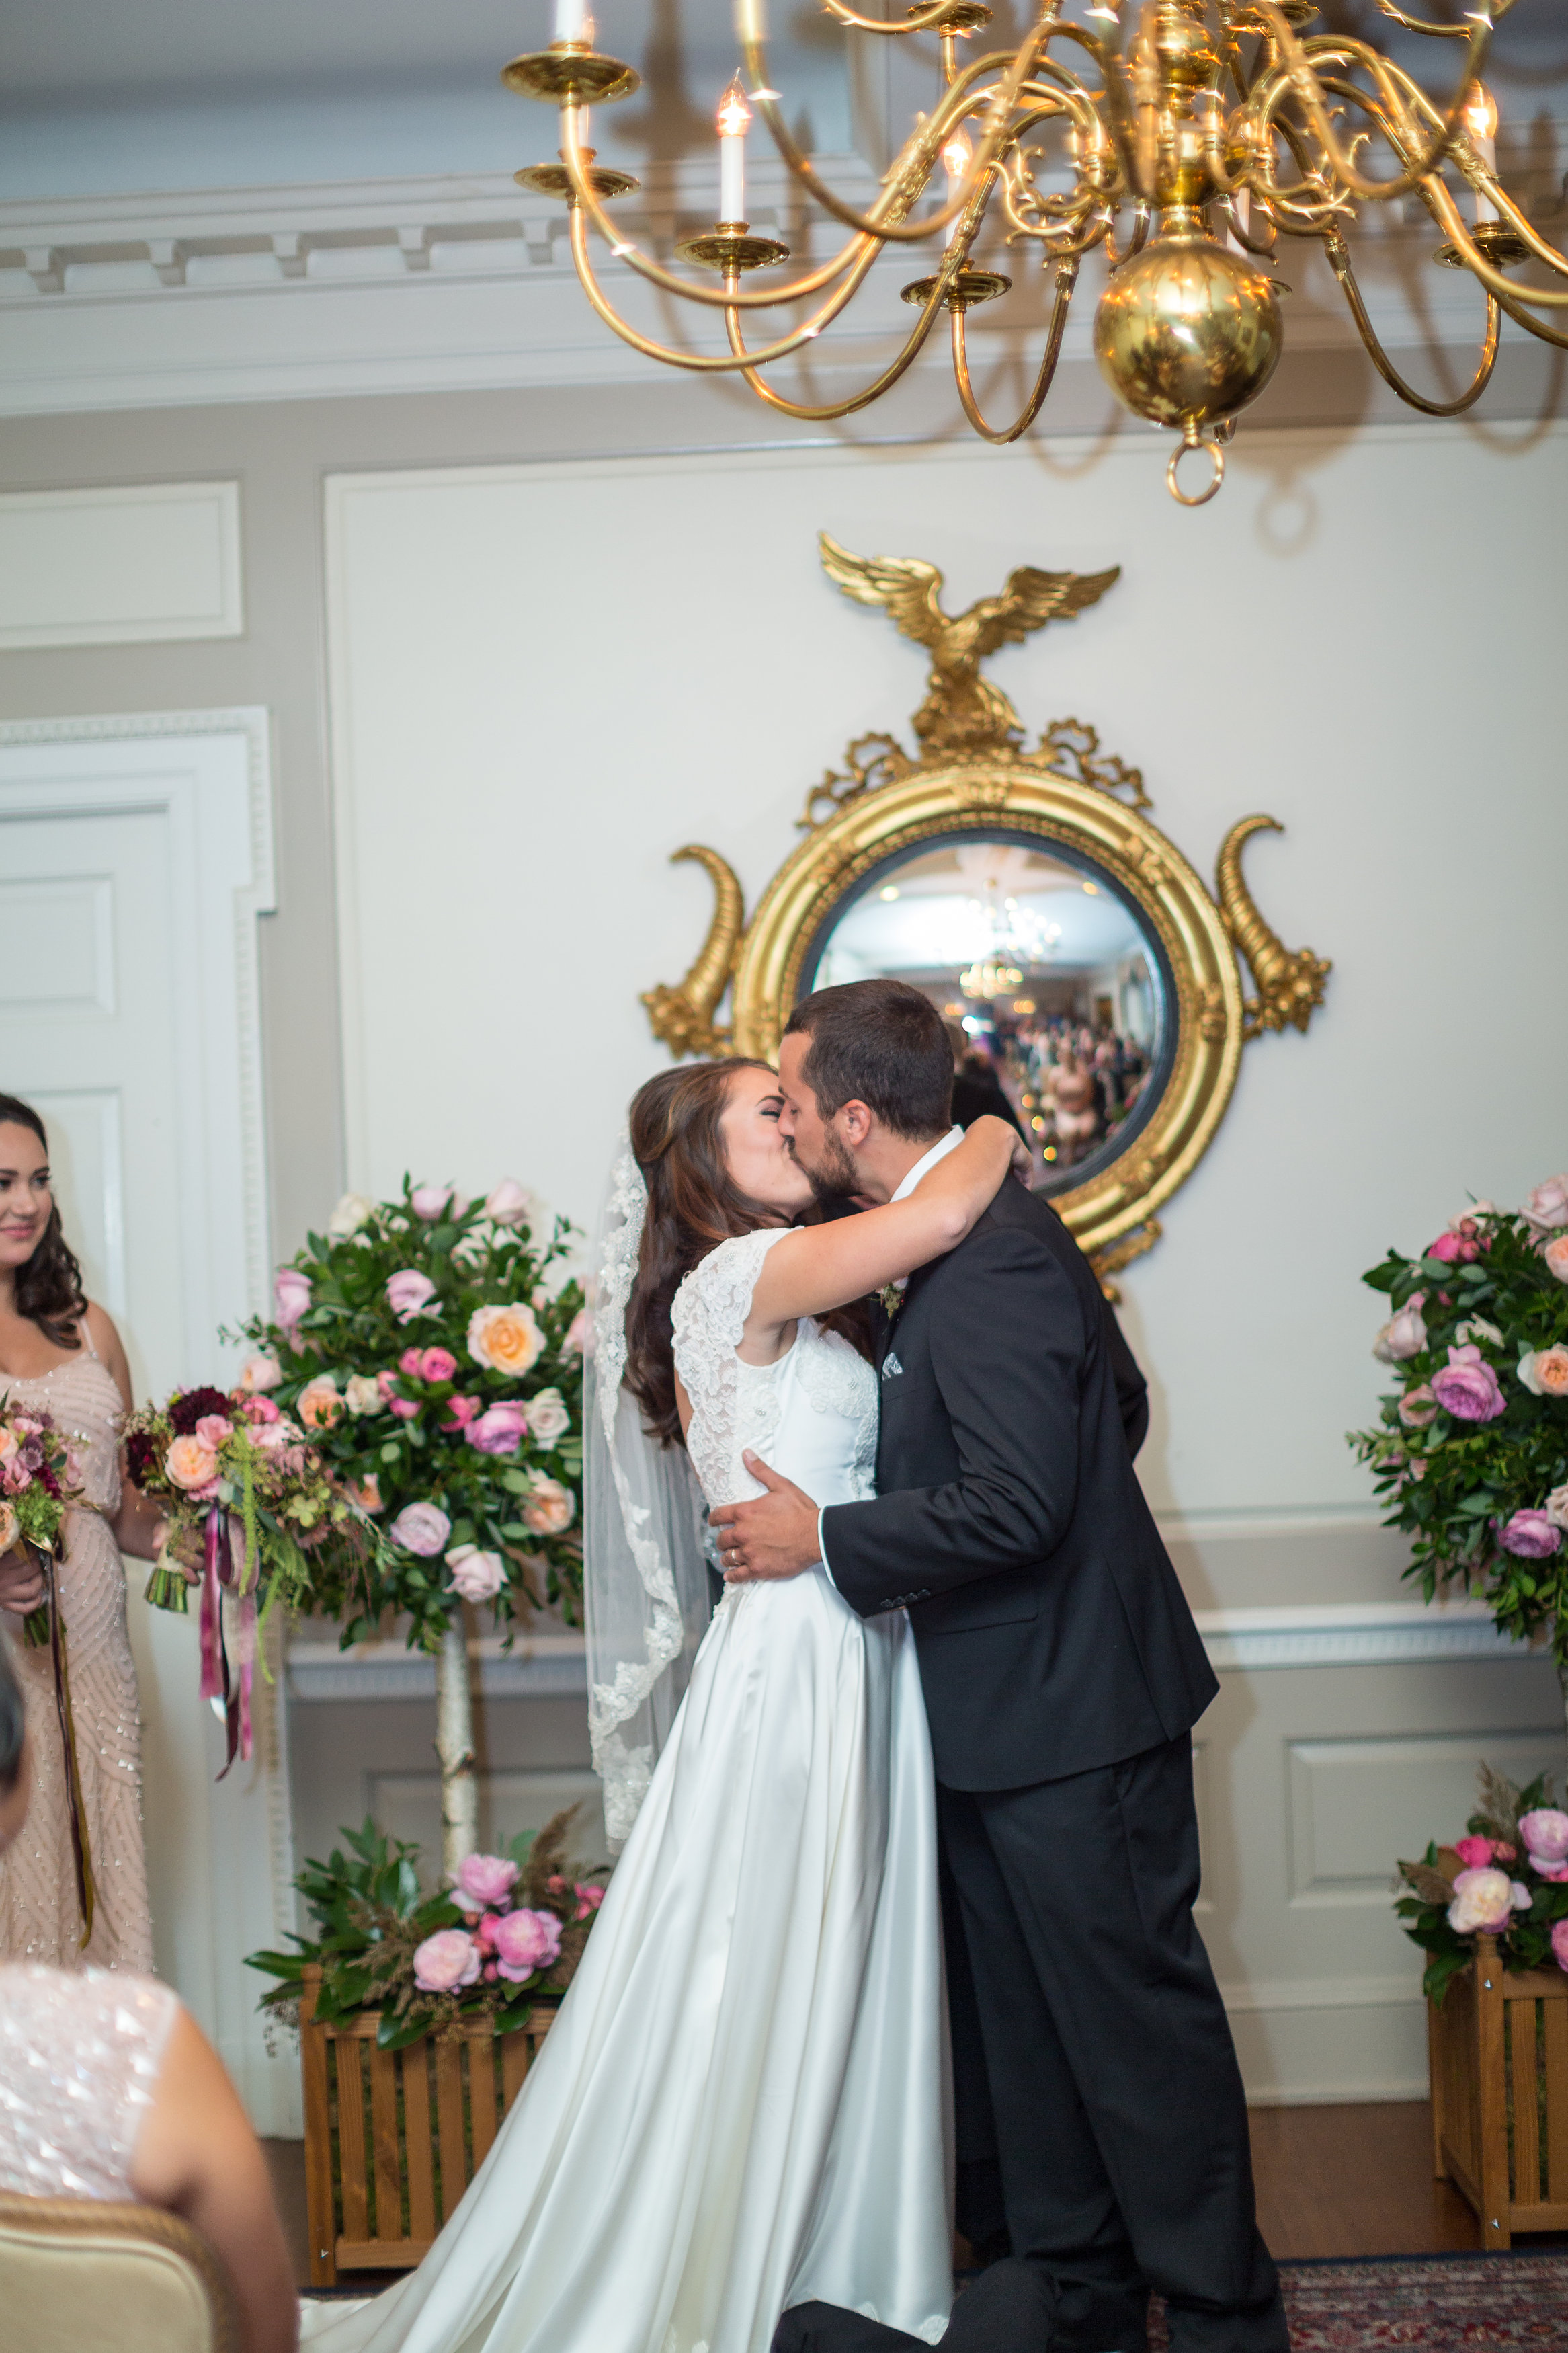 A Garden Party Florist, Tami & Ryan Photography, Brantwyn Estate, Wilmington, Pink, Ceremony Flowers, Topiaries